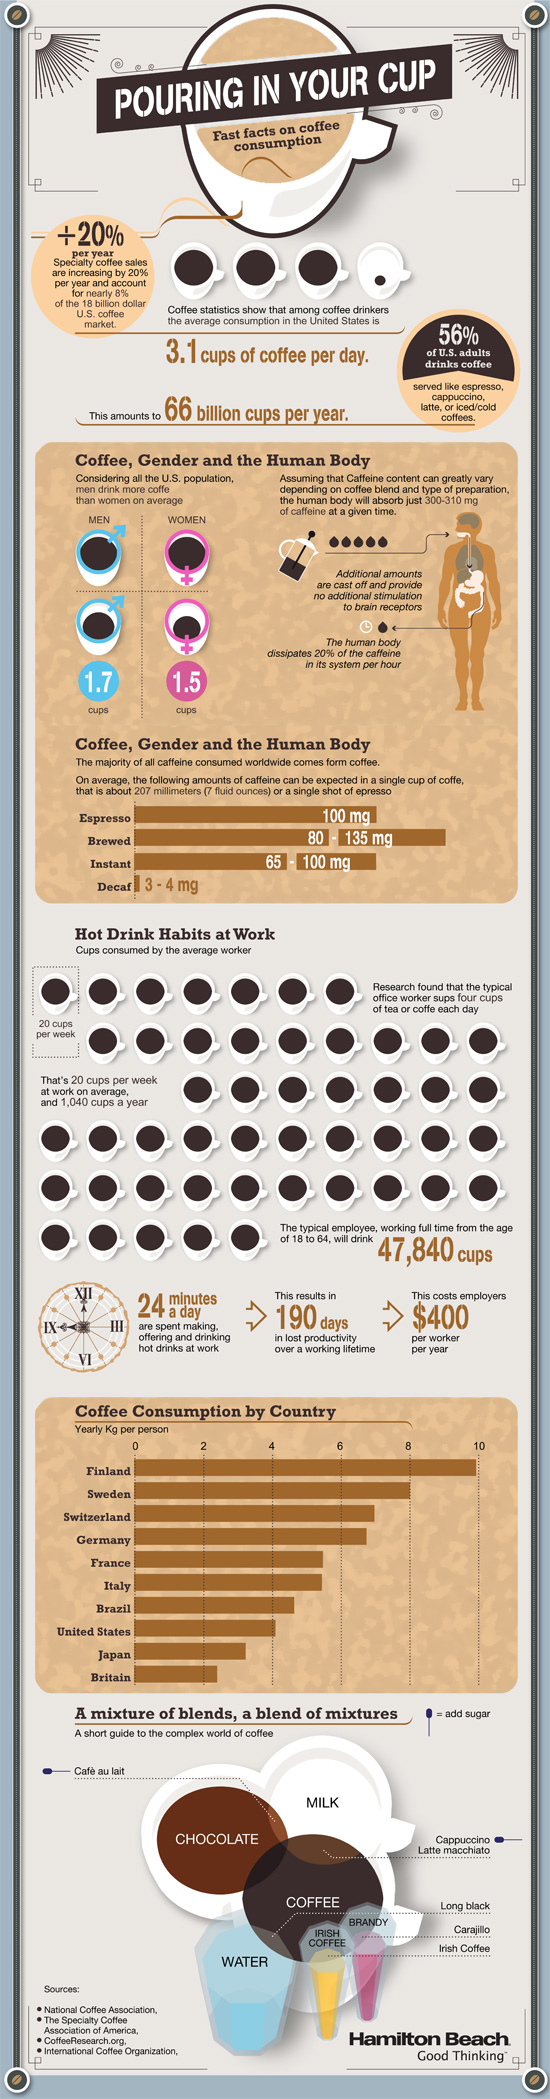 Fast facts about coffee consumption